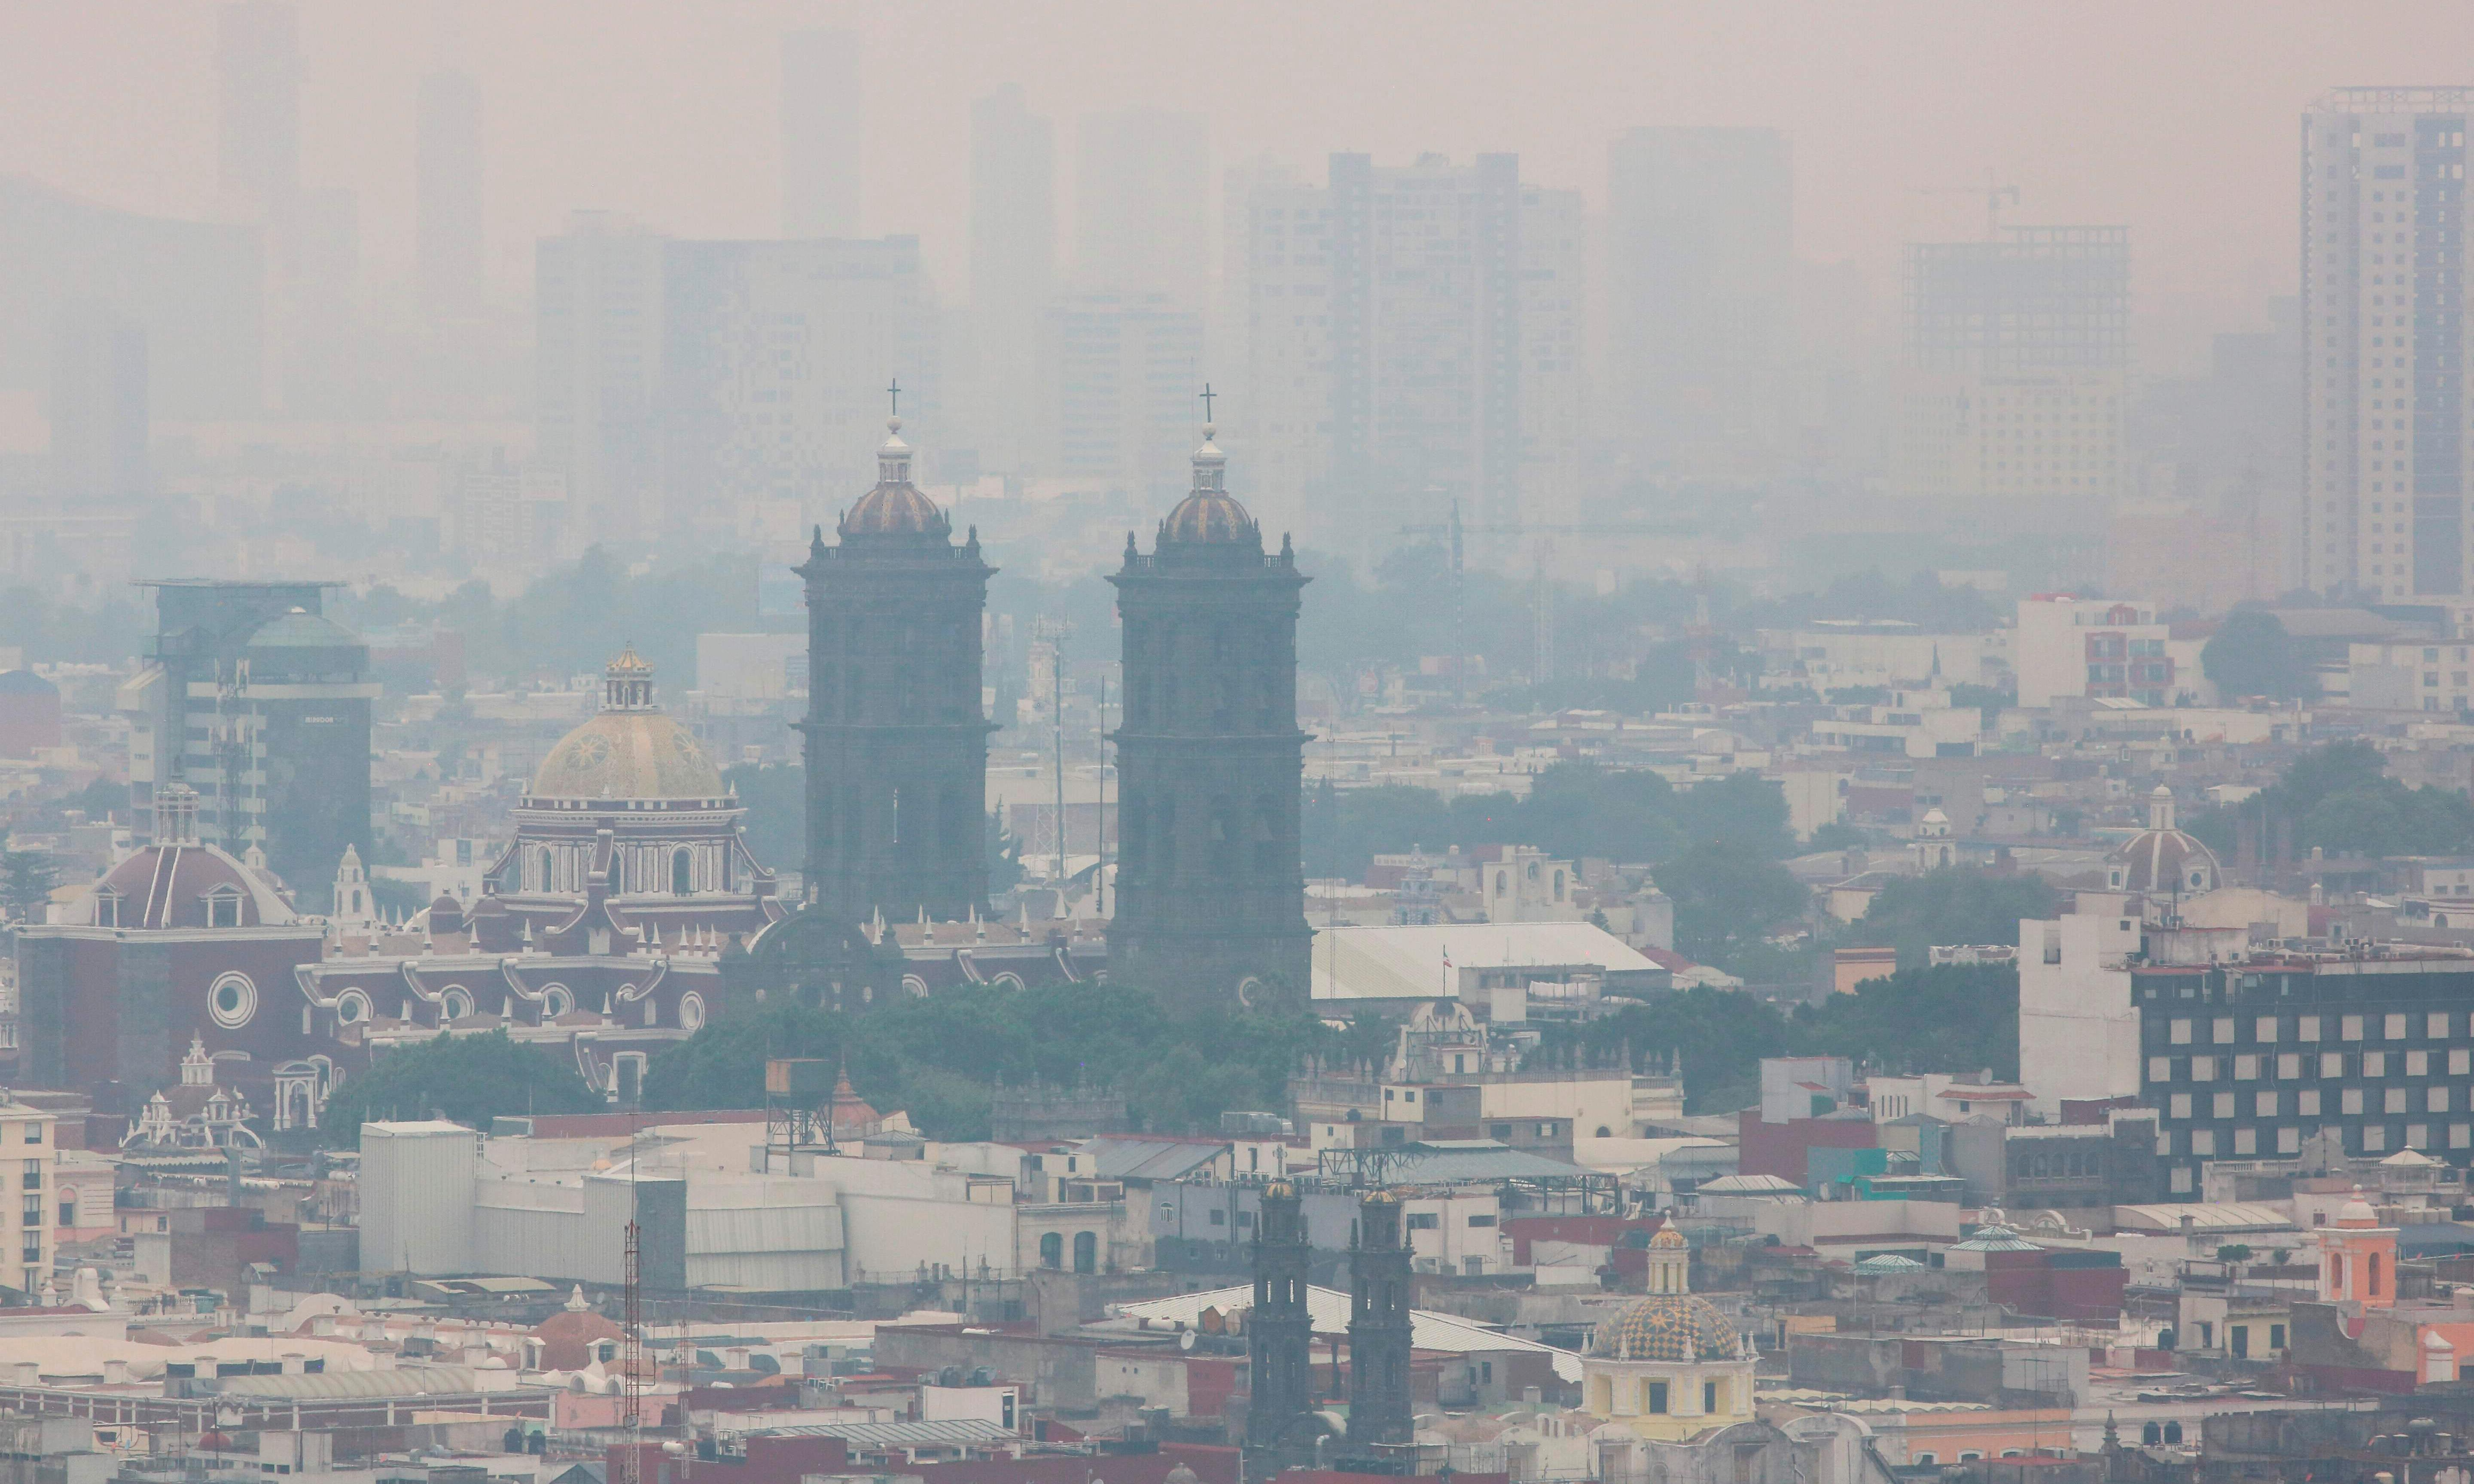 The downside of cleaner air? Longer and hotter heatwaves